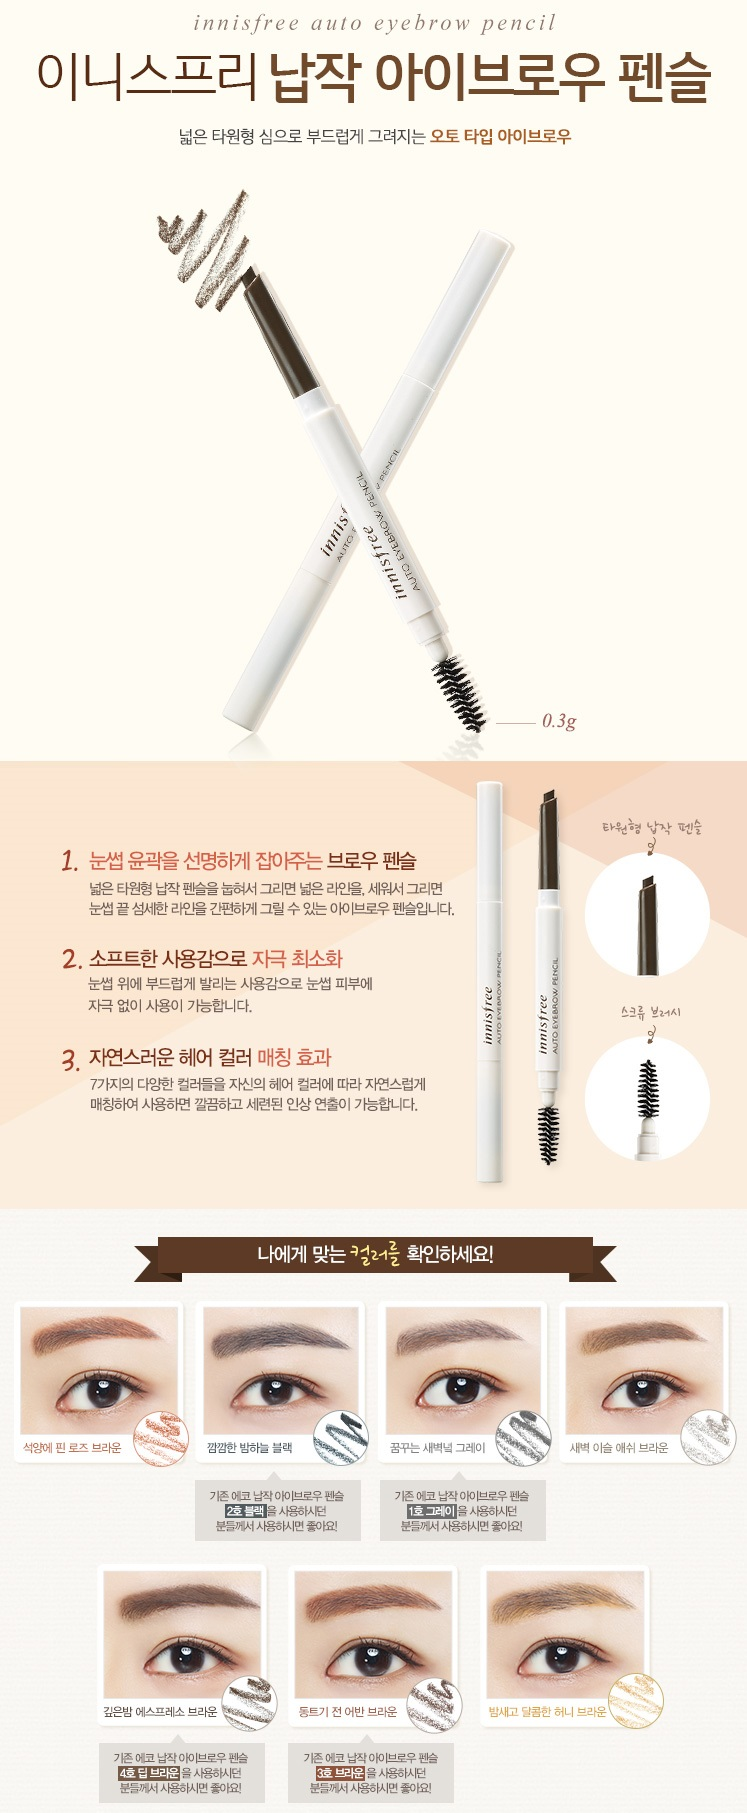 Innisfree Auto Eyebrow Pencil 0.3g #Ash Brown